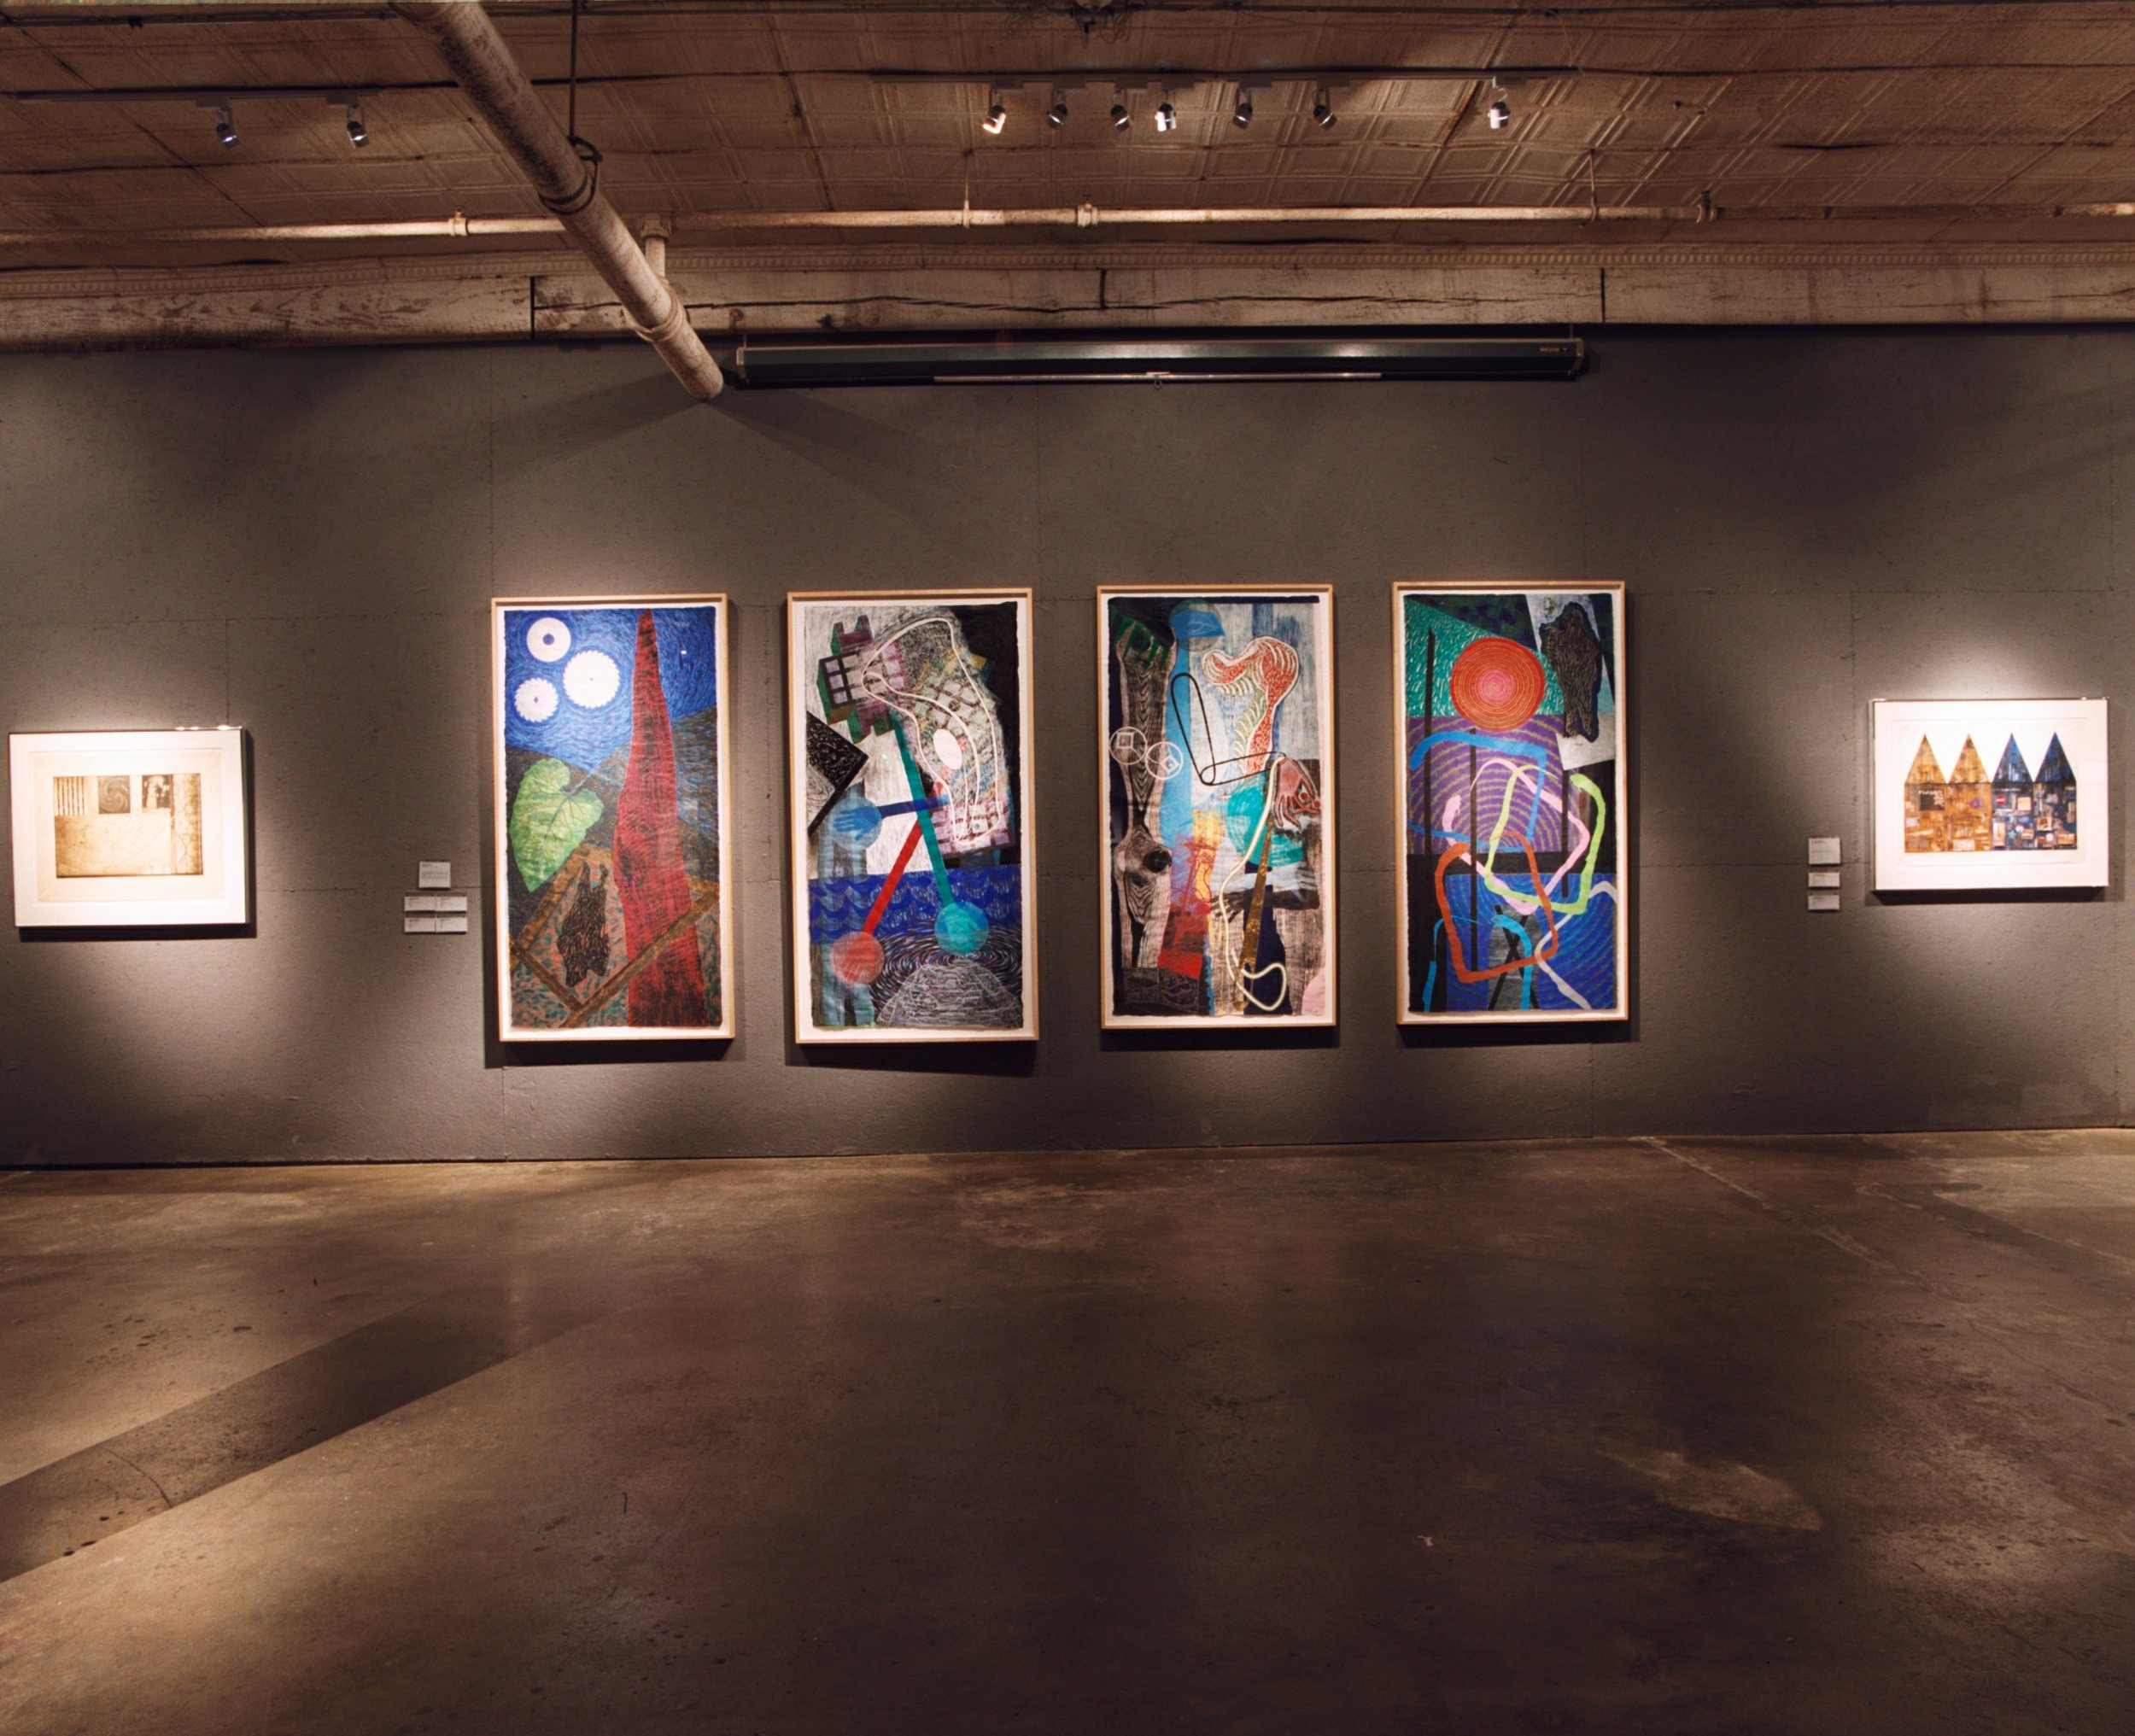 Print Exhibition - Group Exhibition featuring nearly 40 of the top artists of the timeSeptember 20th - November 24th